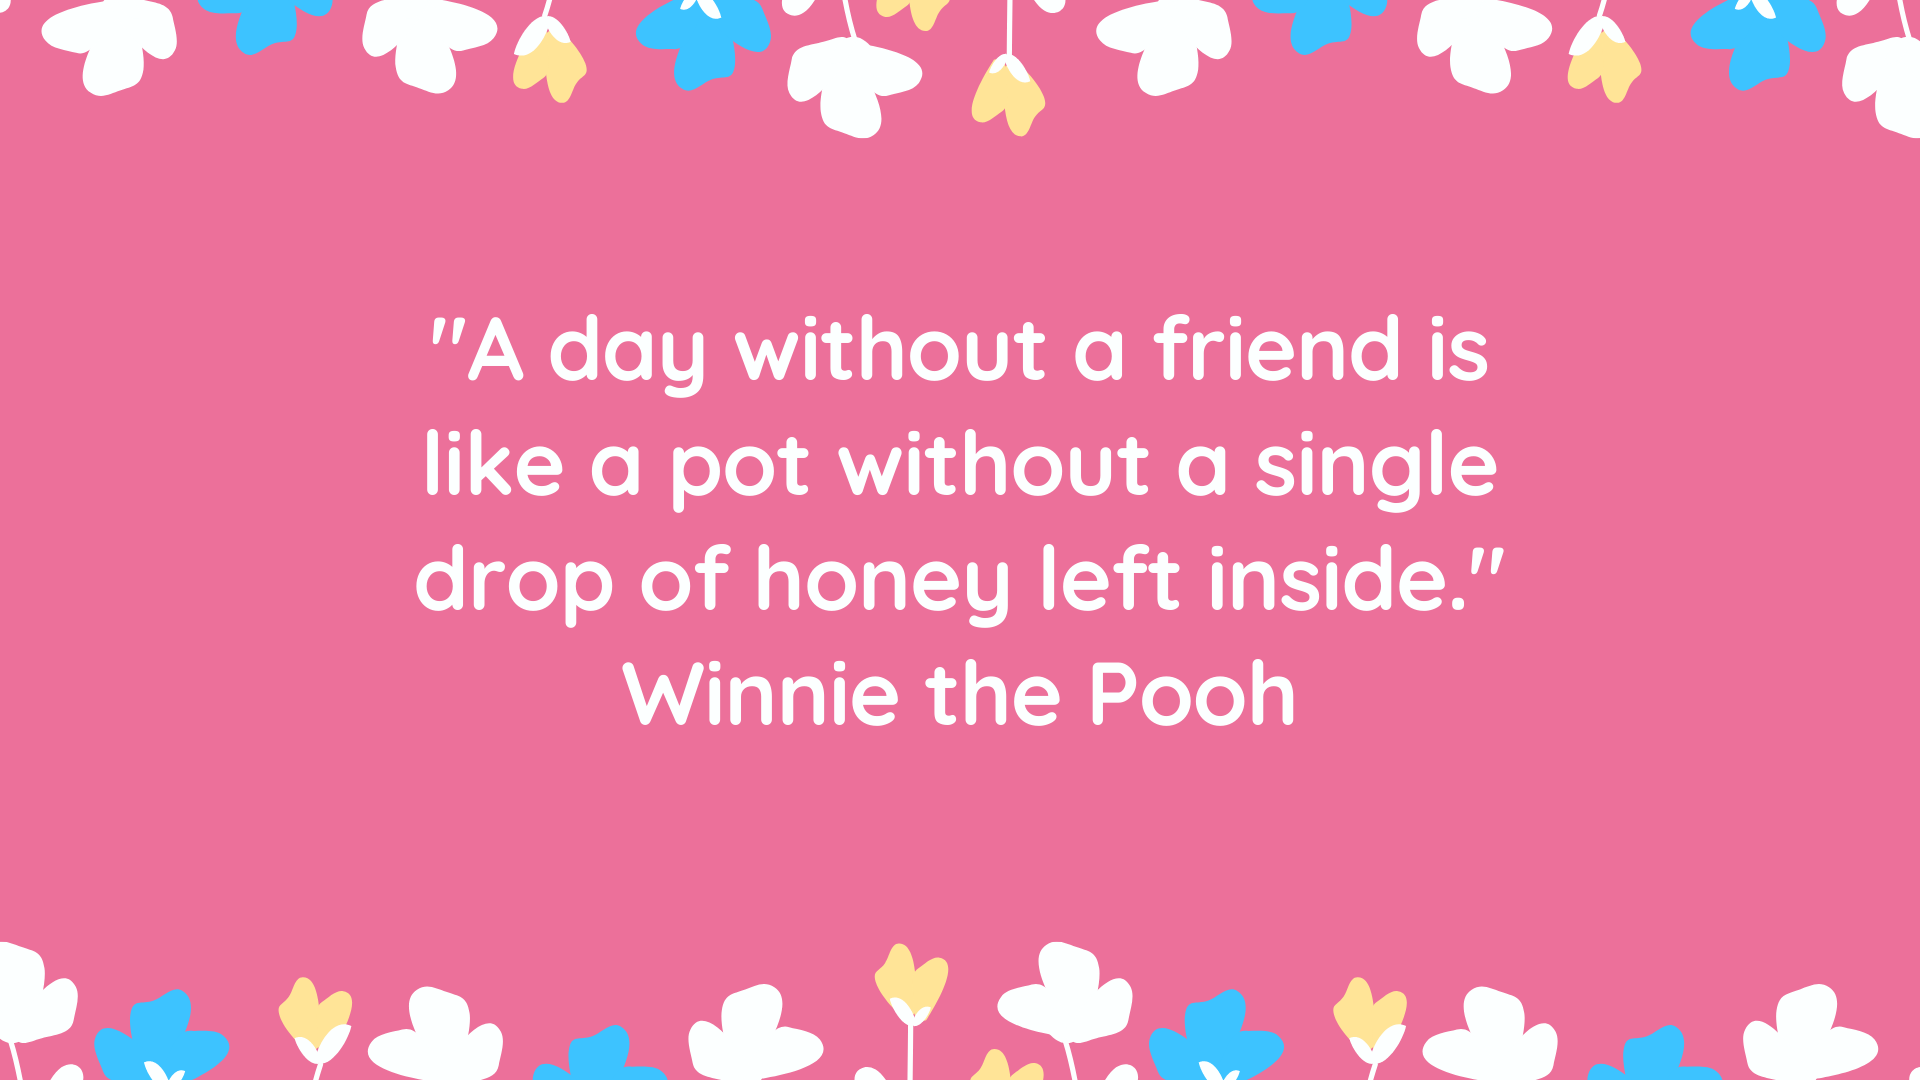 """A day without a friend is like a pot without a single drop of honey left inside."" Winnie the Pooh"